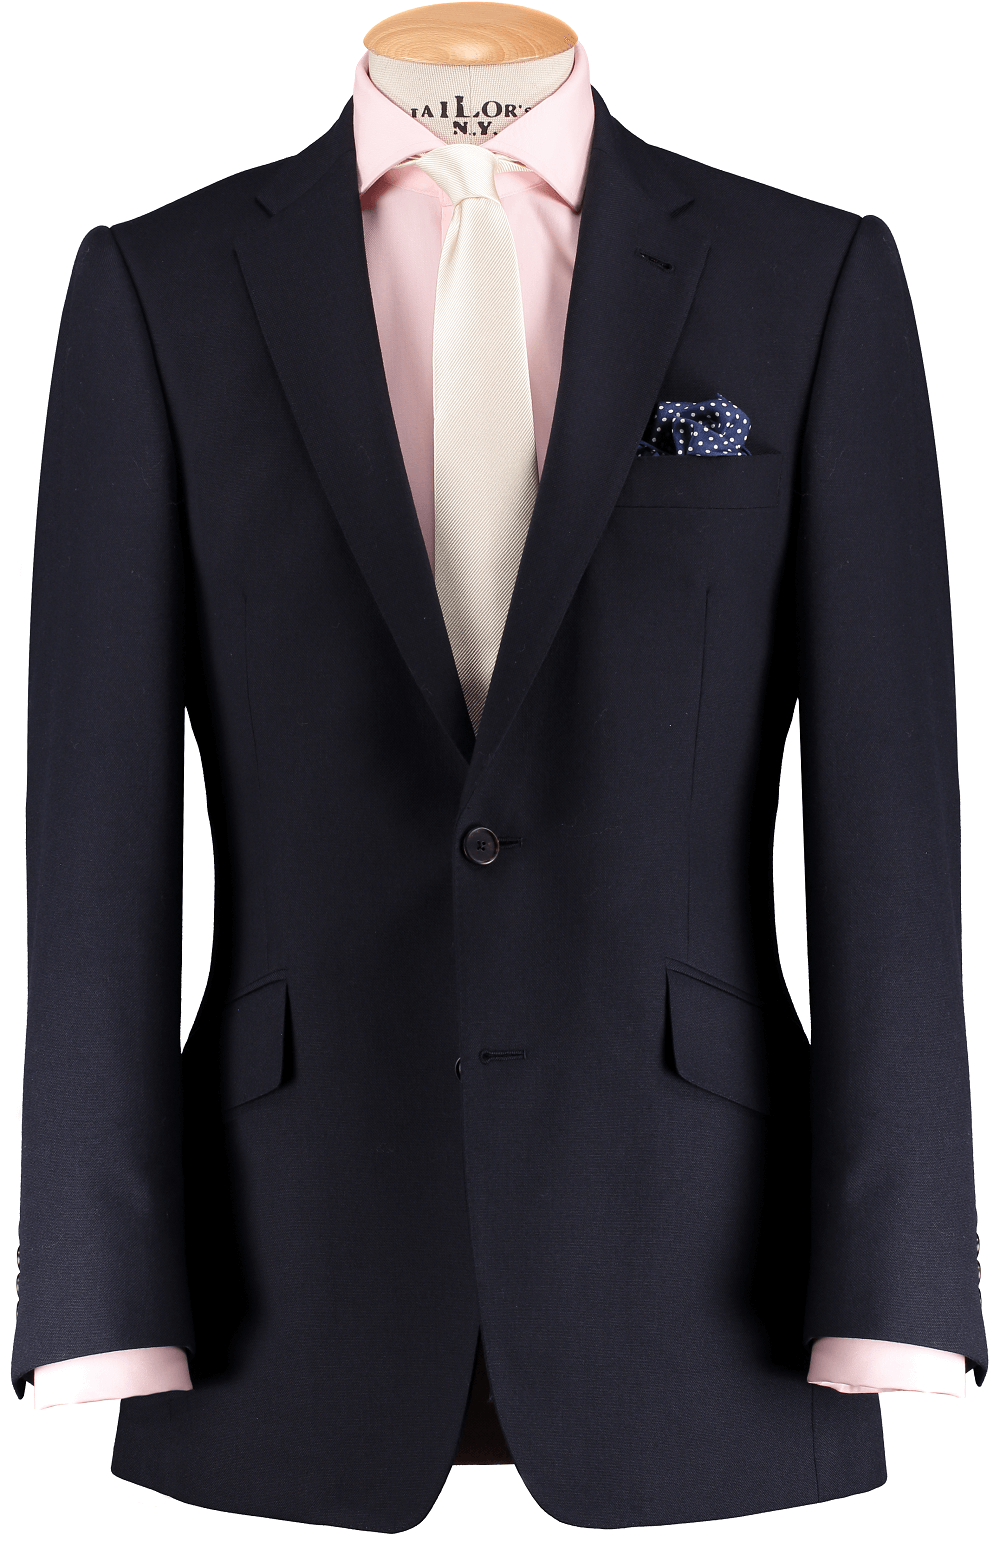 RTW Navy Blue 2 Piece Suit